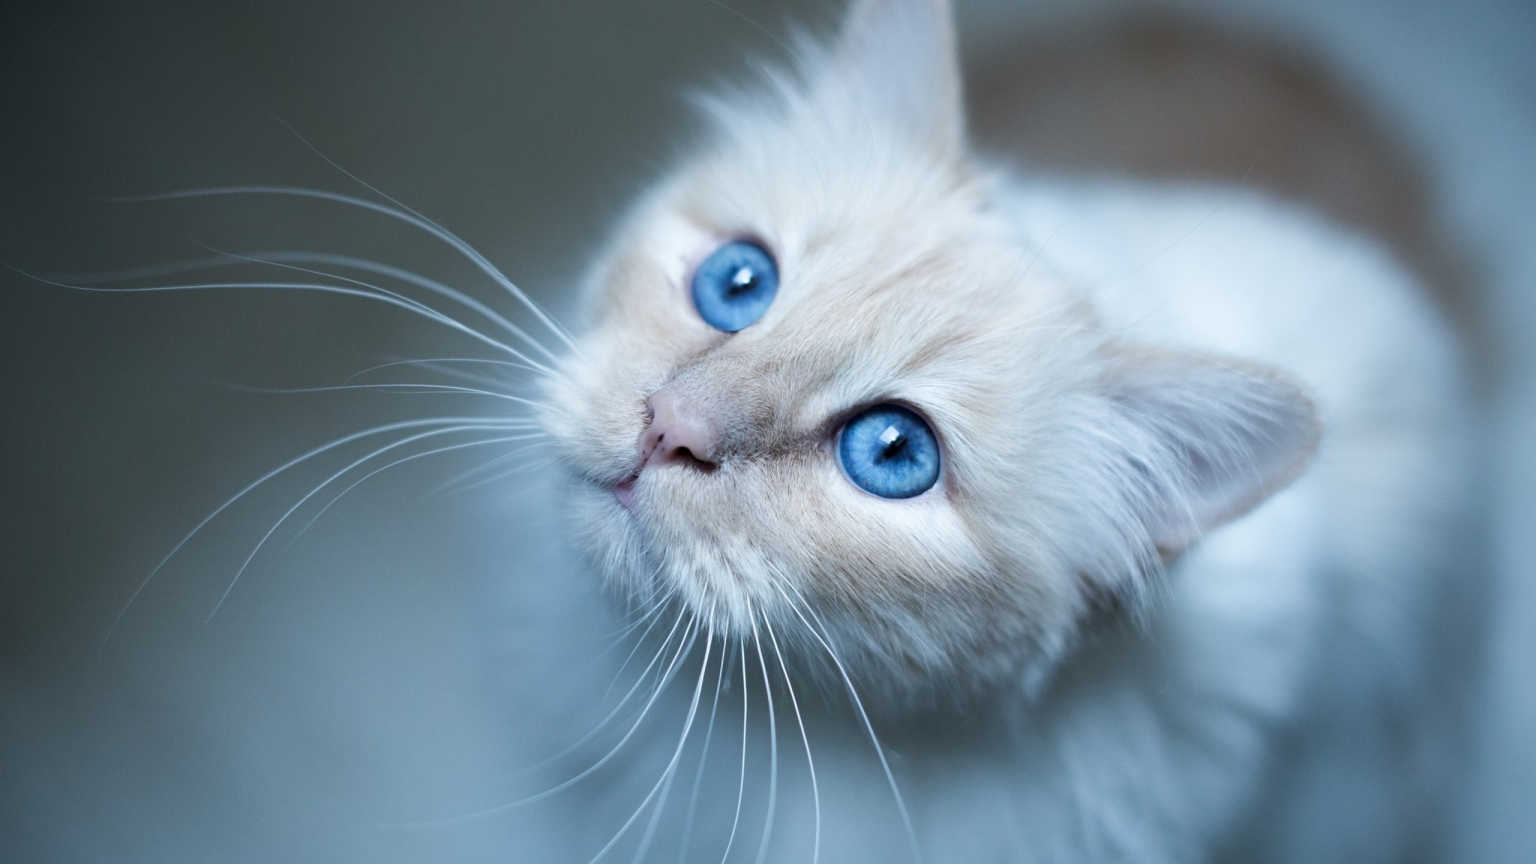 Kitty Blue Eyes for 1536 x 864 HDTV resolution